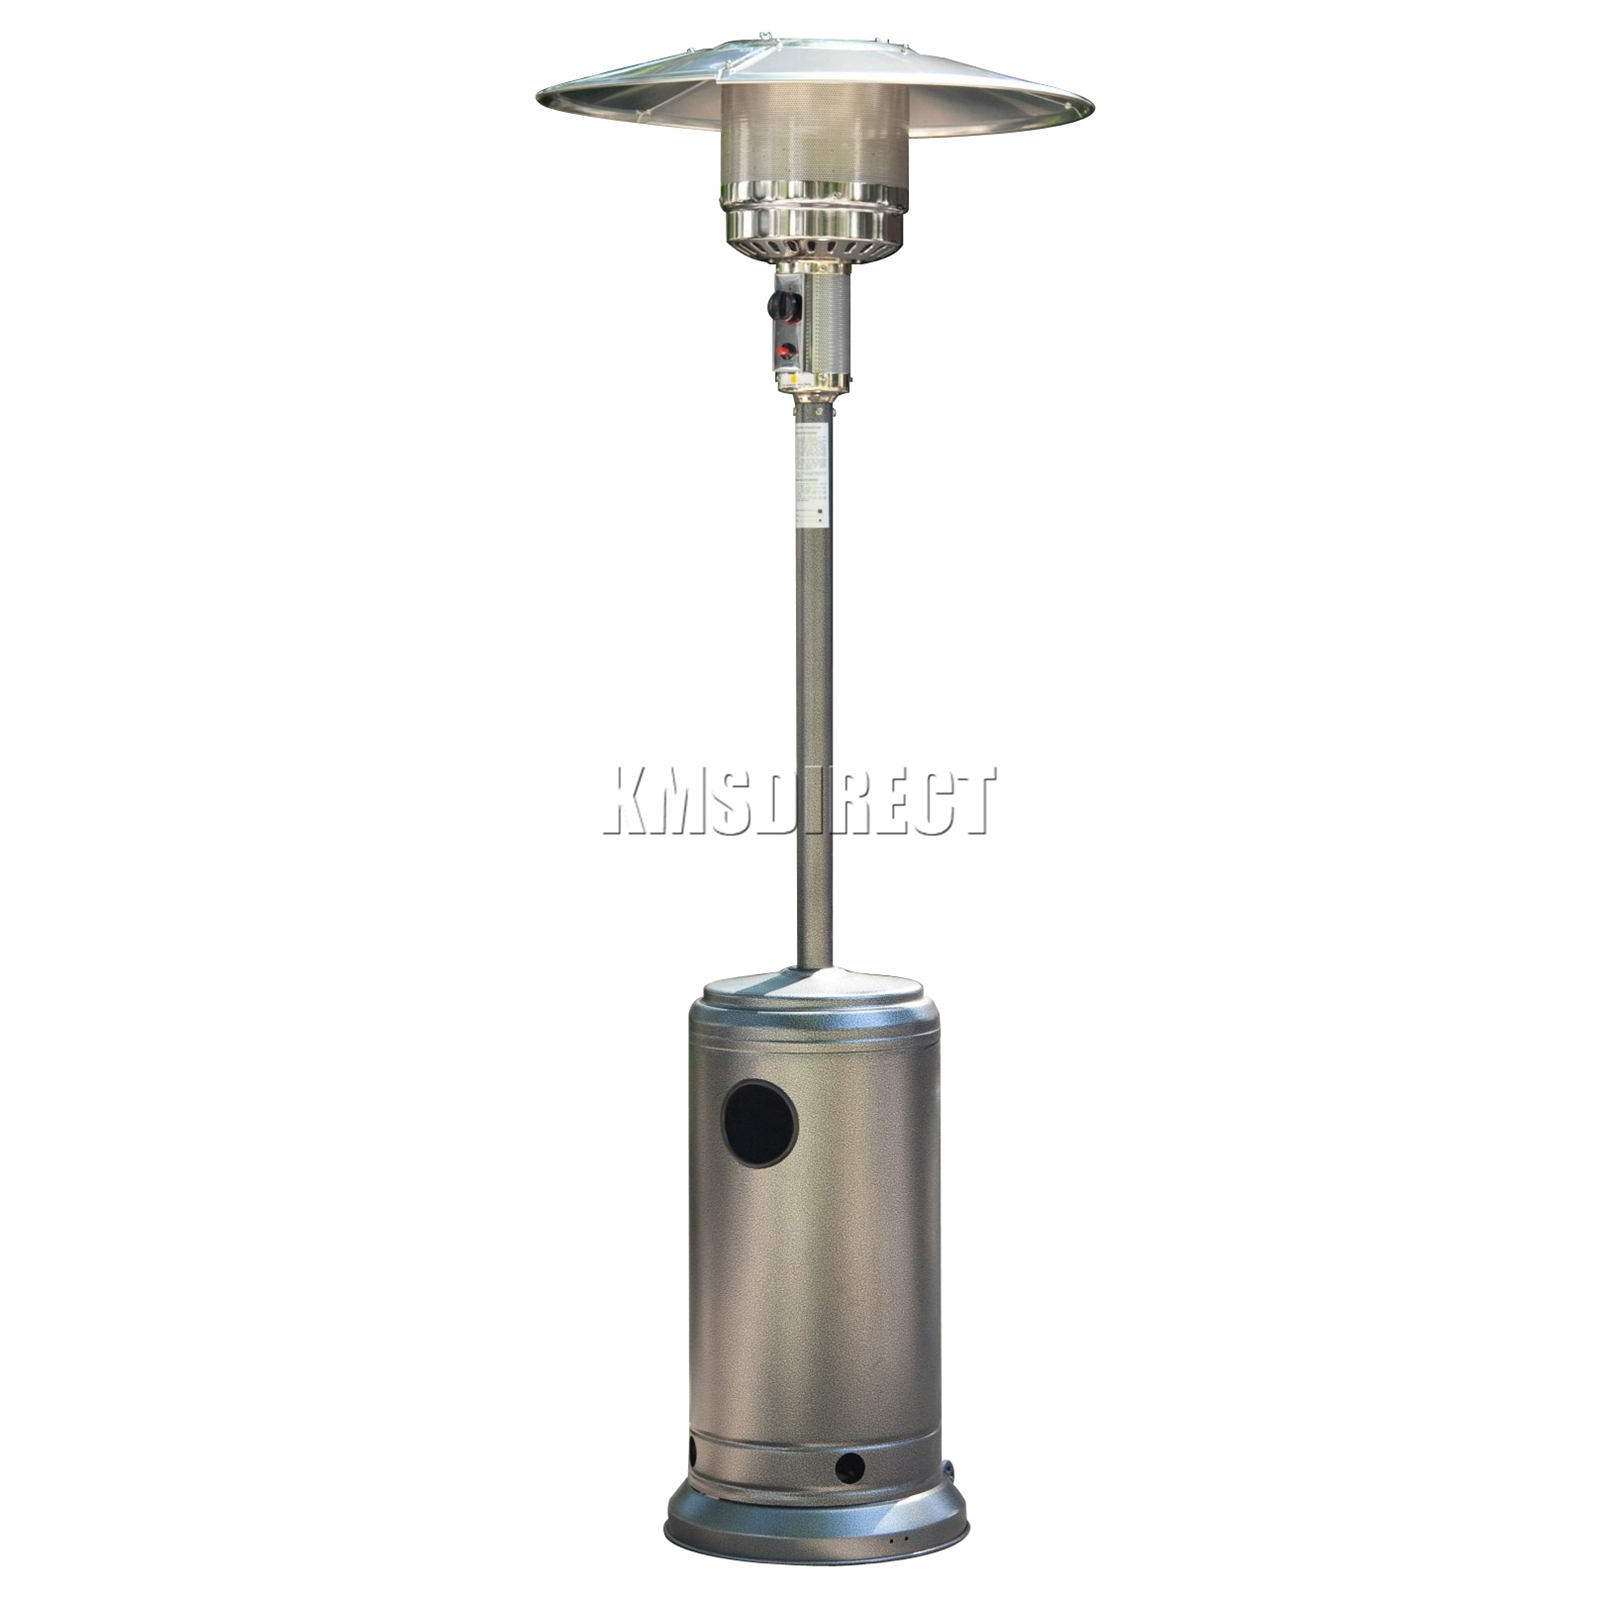 12000W Stainless Steel Outdoor Garden Fire BBQ Grill Gas Patio Heater Regulator